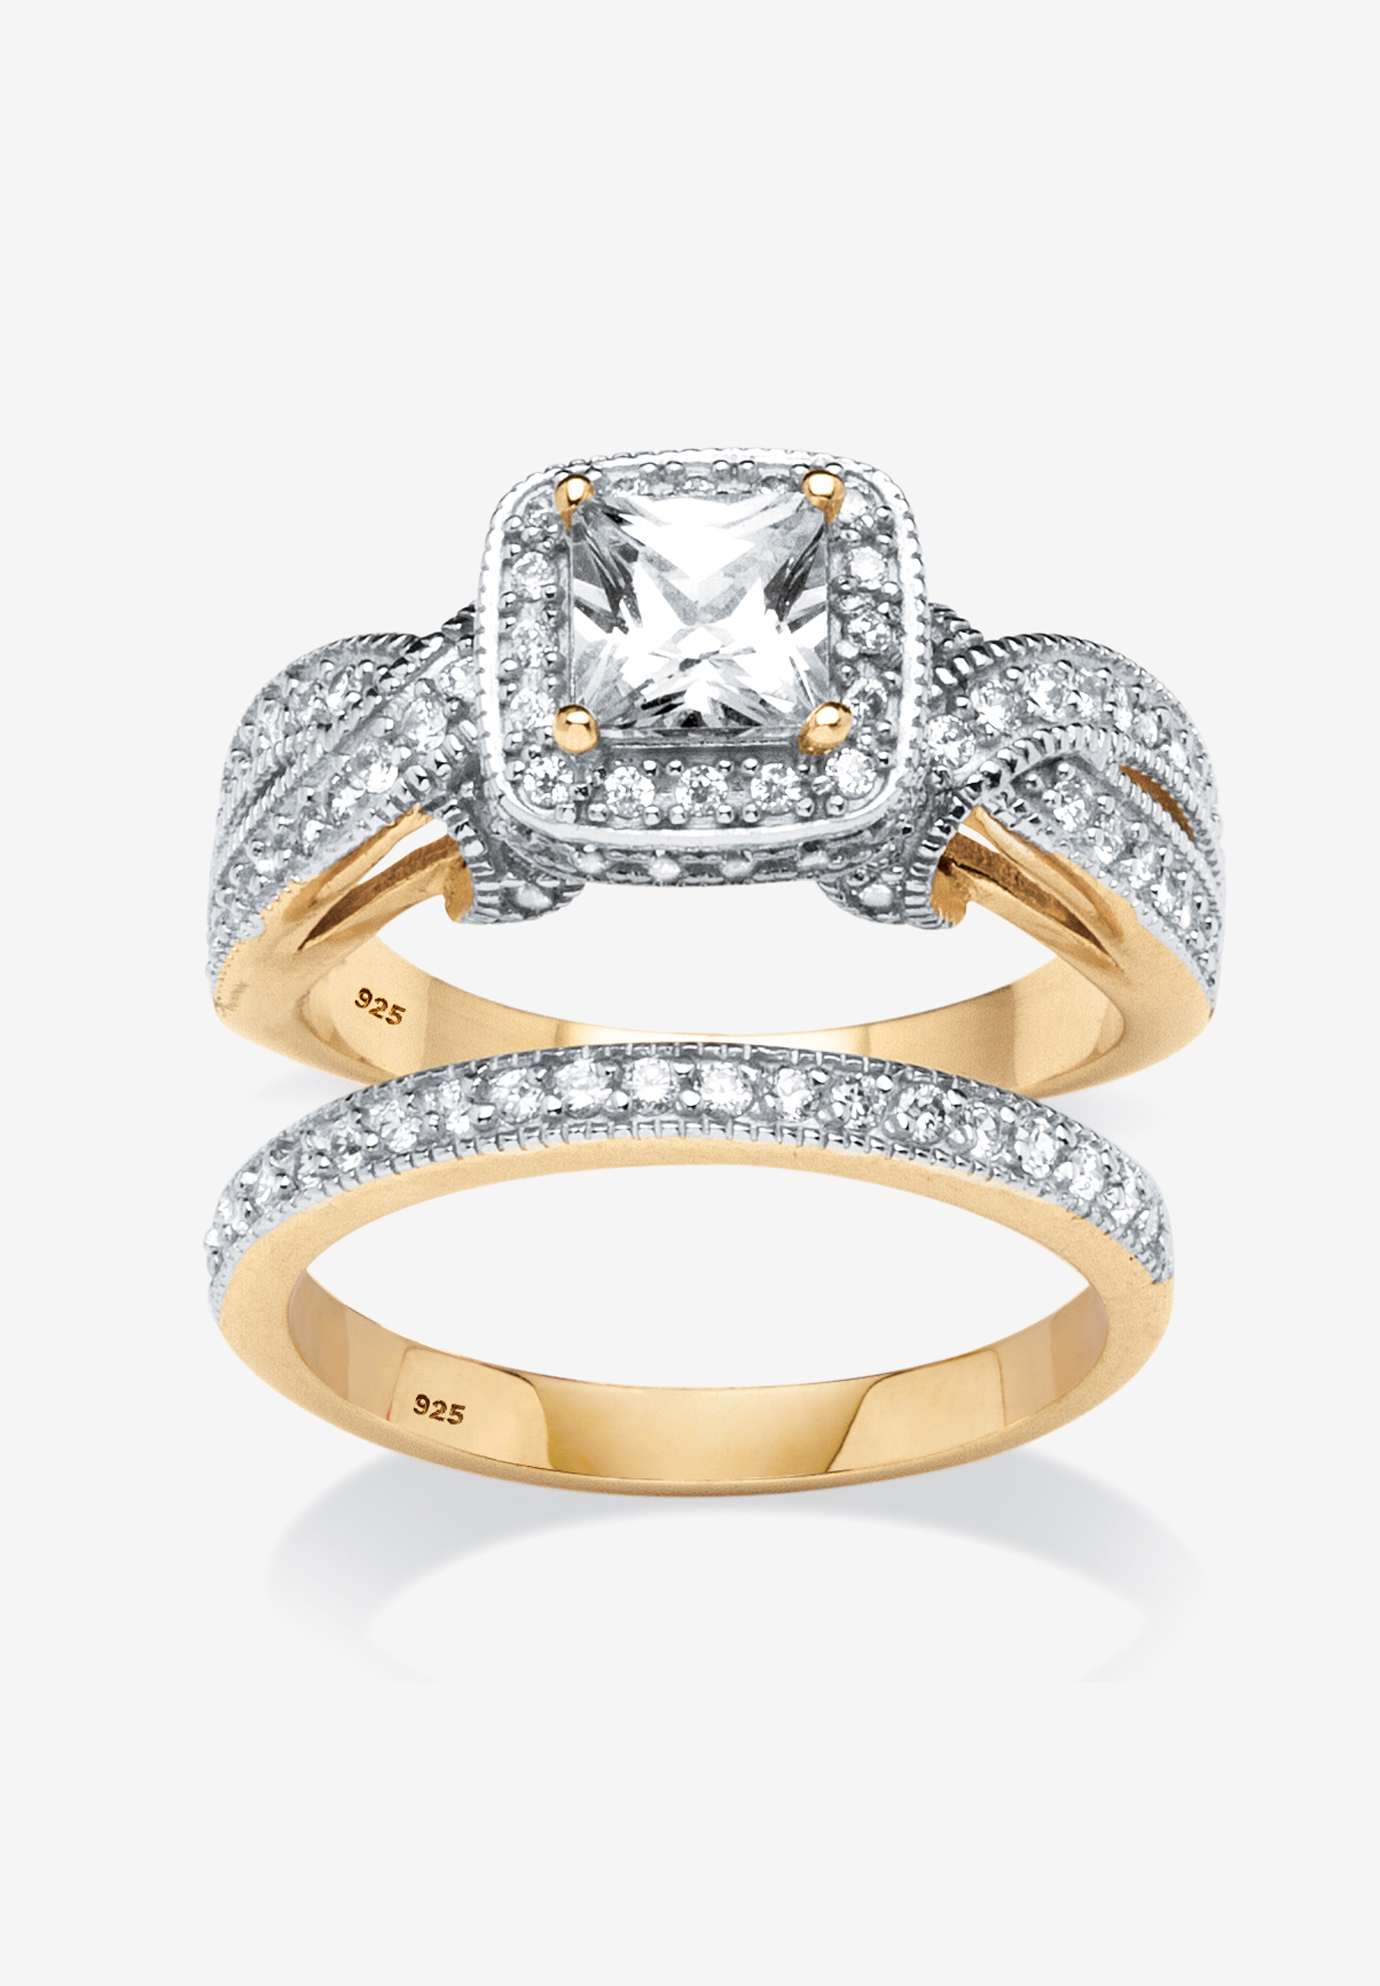 Gold over Silver Bridal Ring Set Cubic Zirconia (1 3/4 cttw TDW),